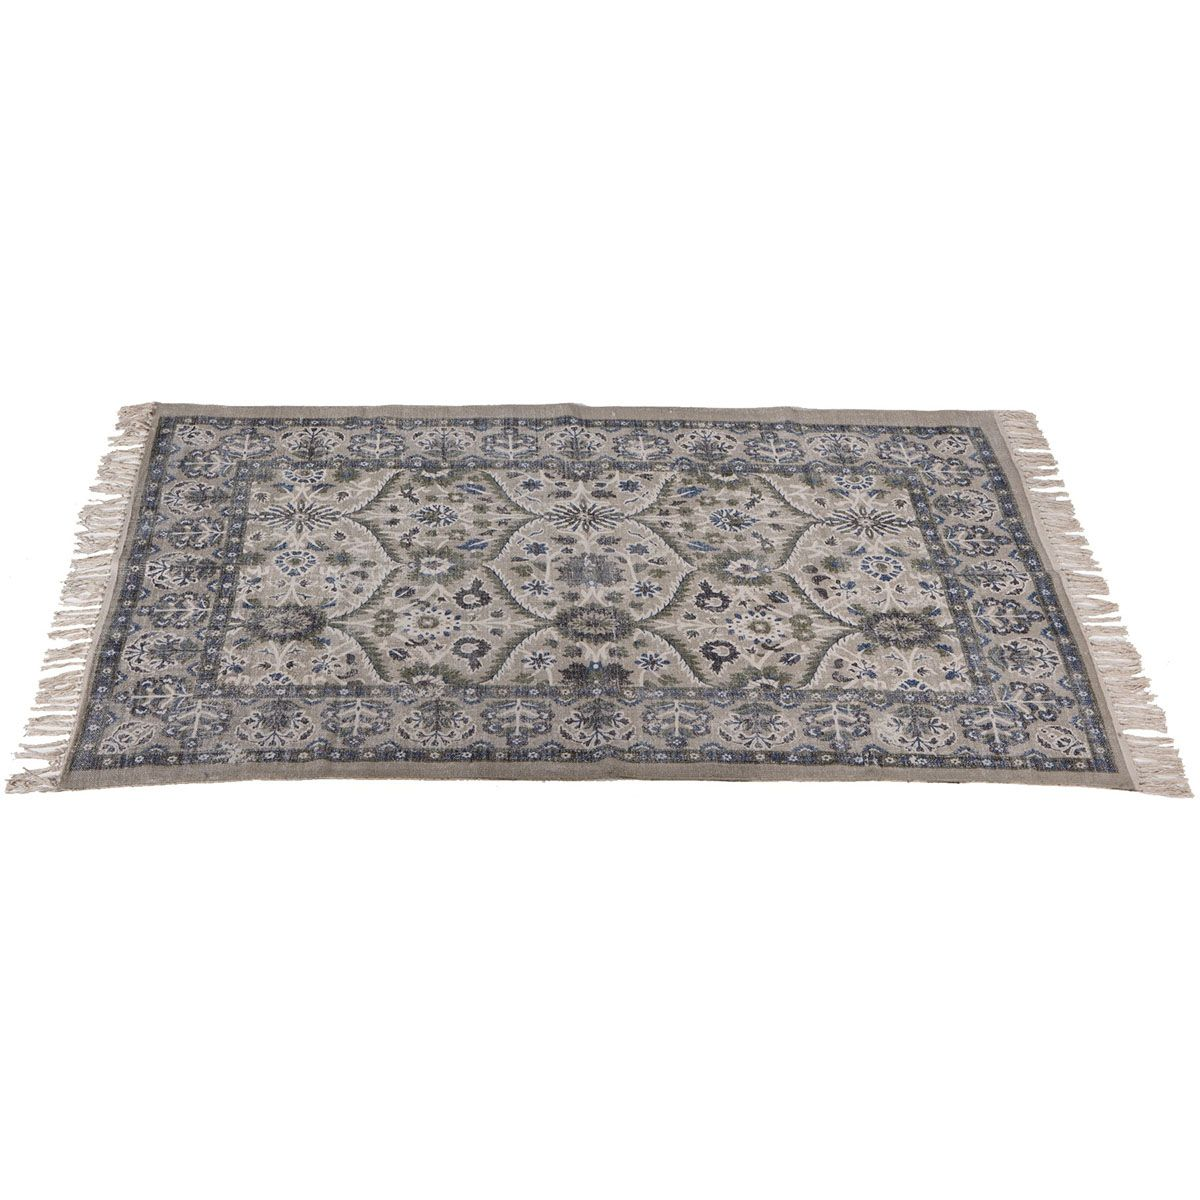 Blue and Gray Fringed Rug